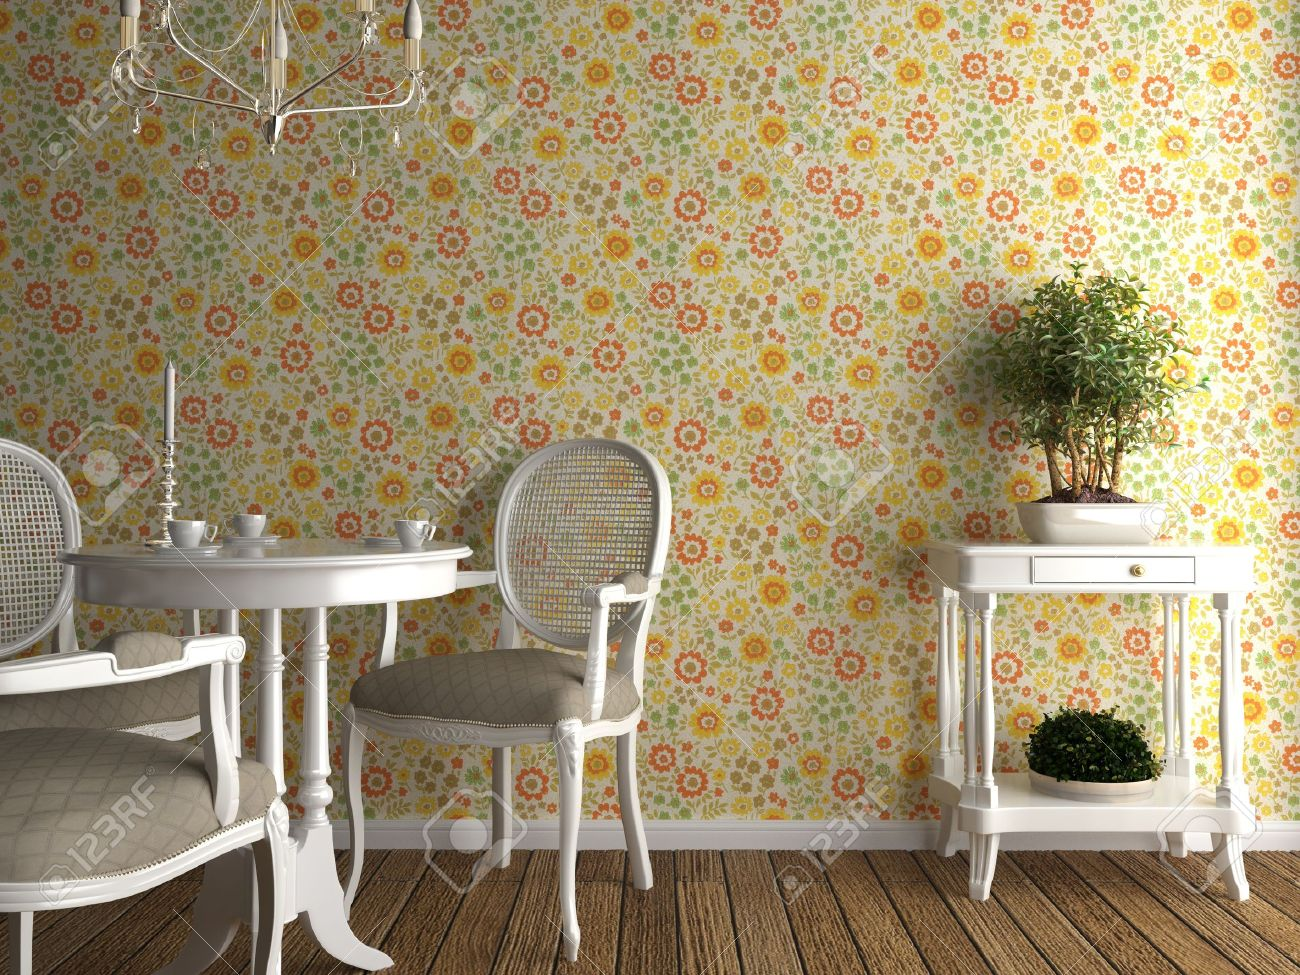 home interior with flowery wallpaper and white furniture Stock Photo    4396910. Home Interior With Flowery Wallpaper And White Furniture Stock